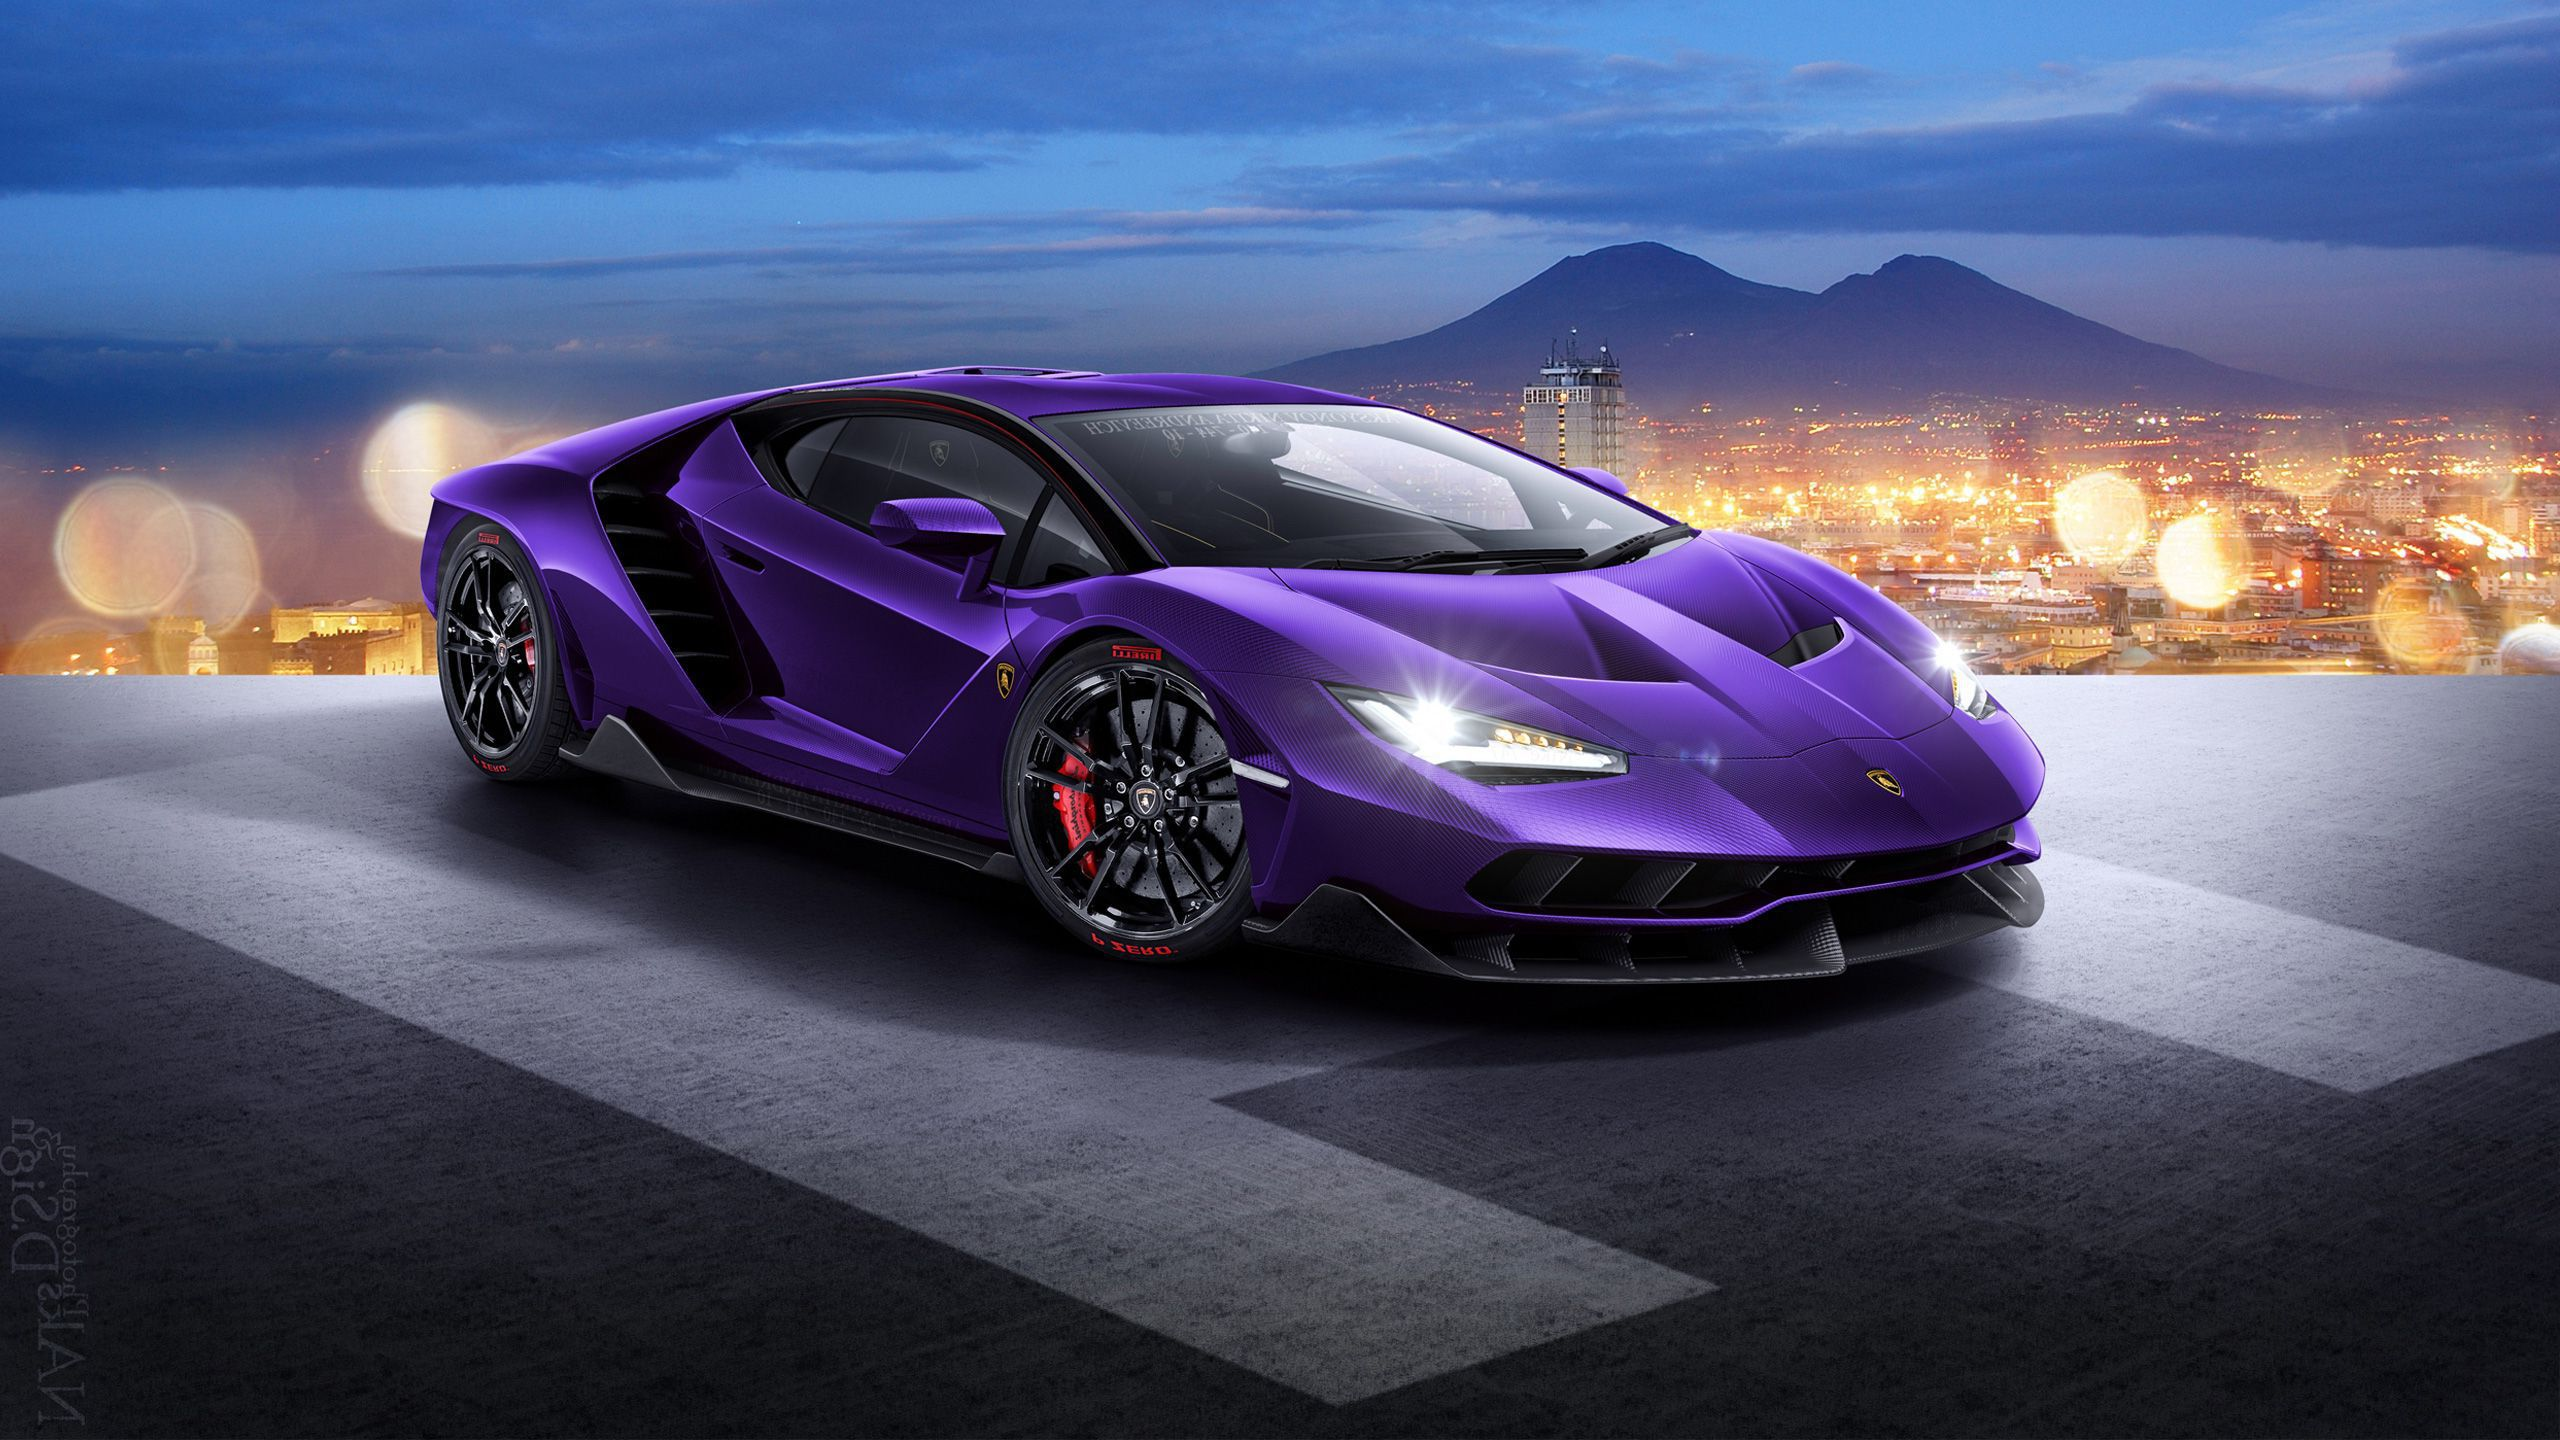 Blue 2018 Lamborghini Centenario Lp 770 4 Motion Full Hd